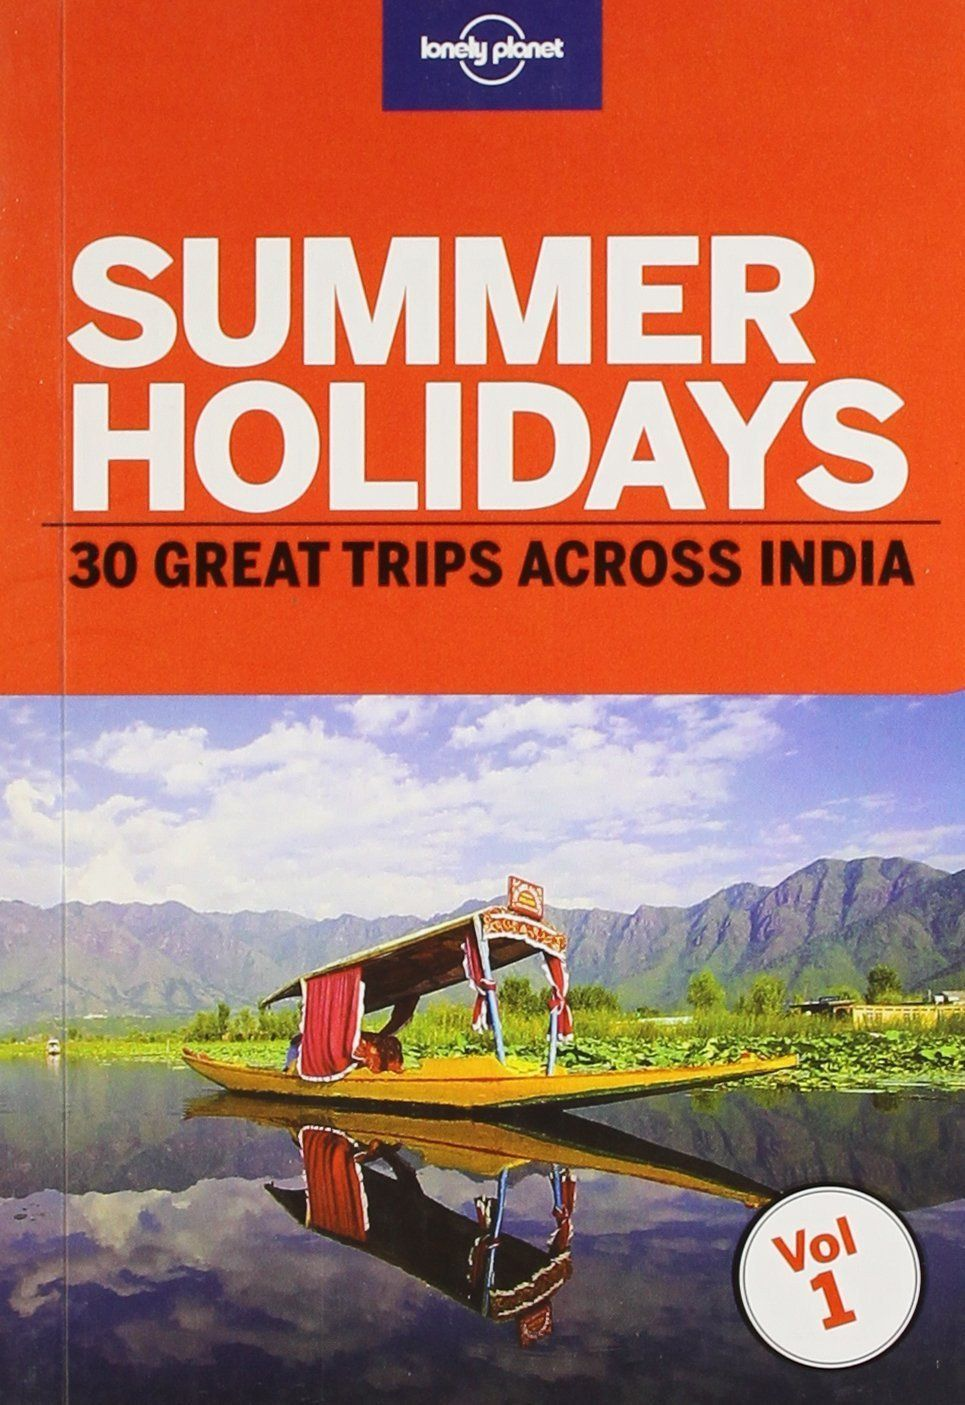 Summer Holidays: Vol. 1: 30 Great Trips Across India [May